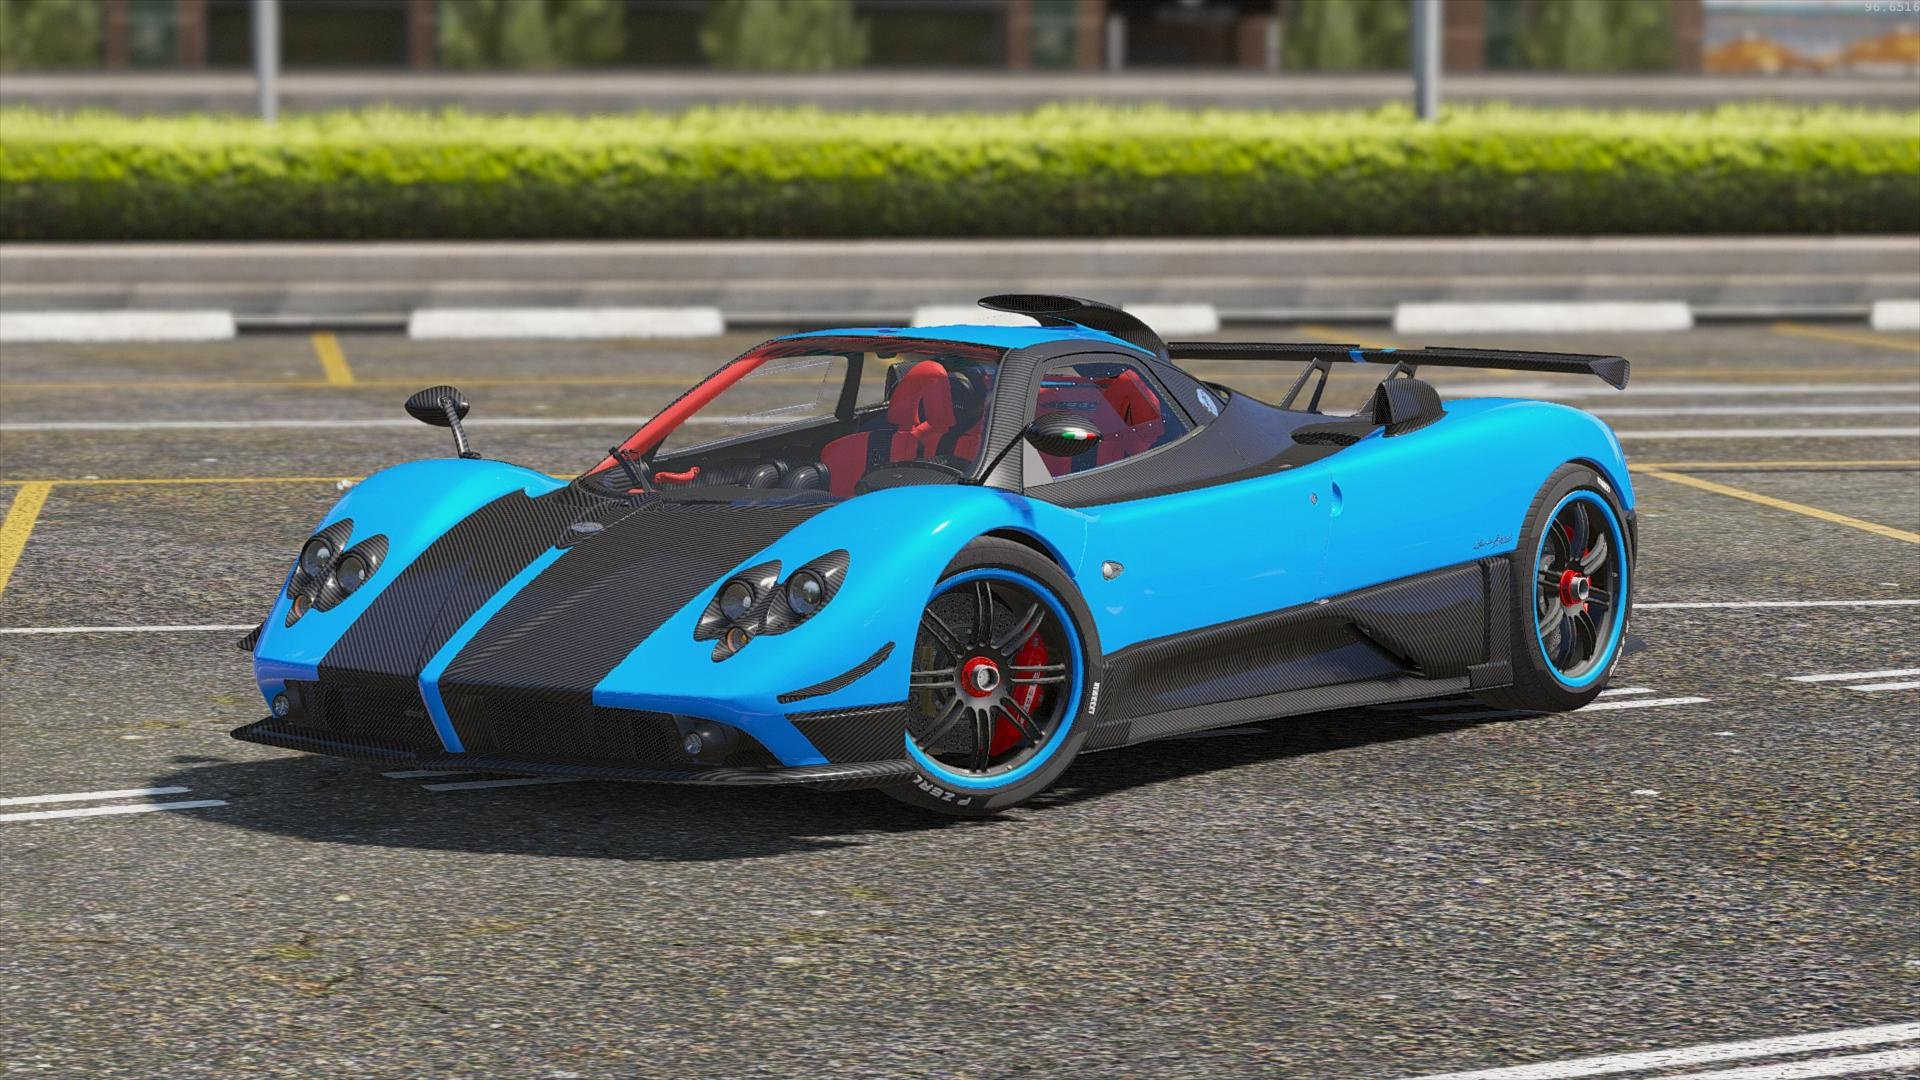 pagani zonda cinque vehicules pour gta v sur gta modding. Black Bedroom Furniture Sets. Home Design Ideas